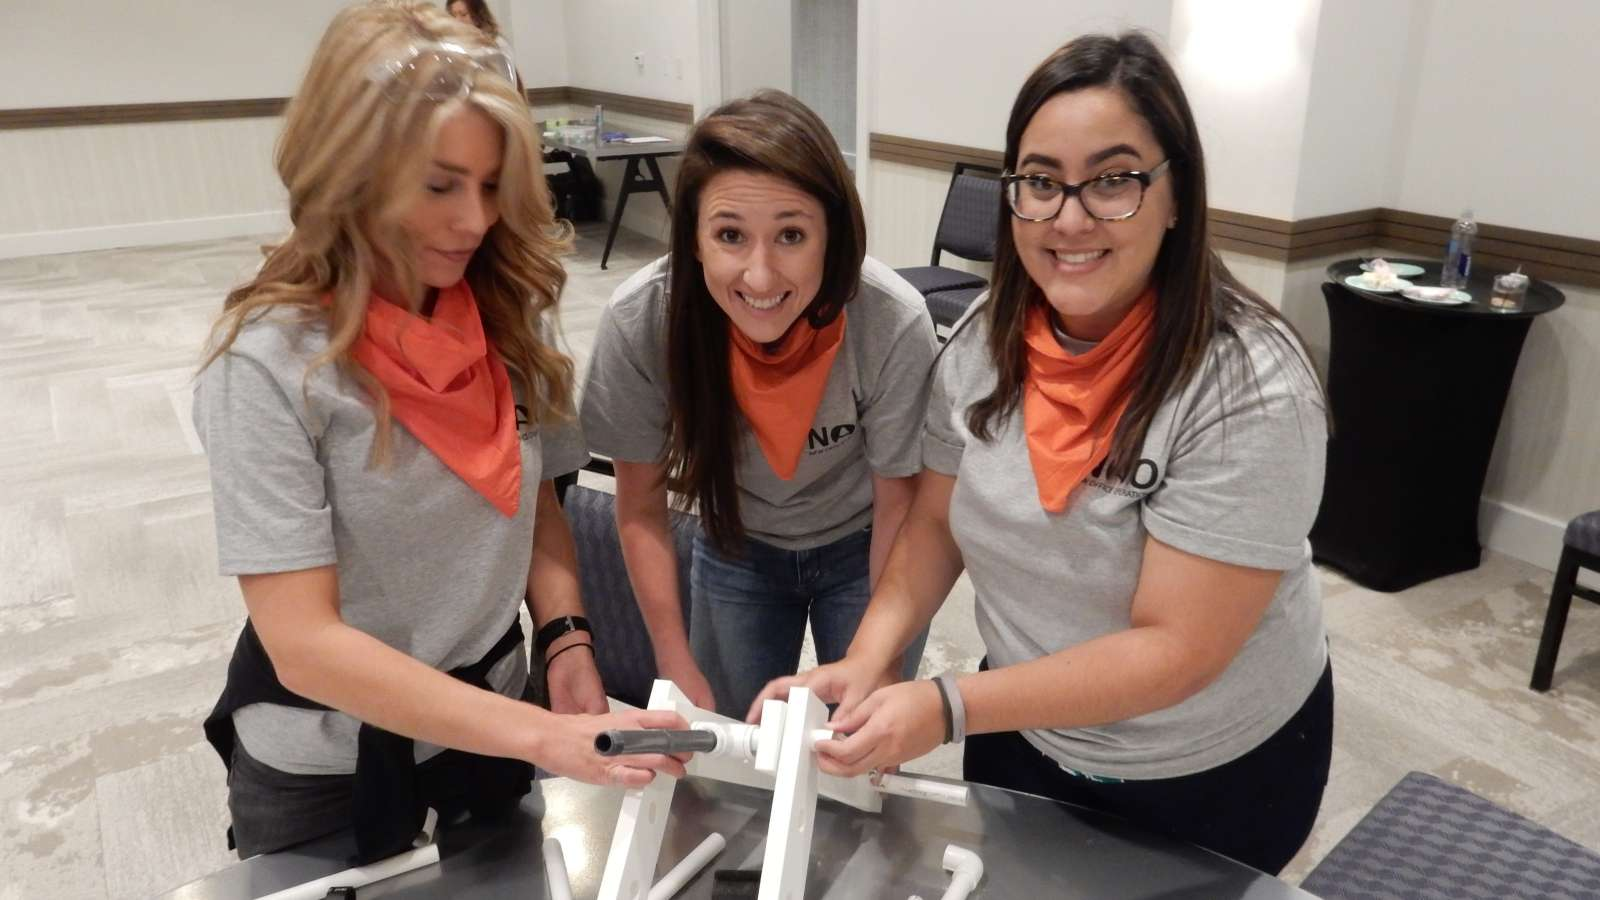 women building a catapult for team building